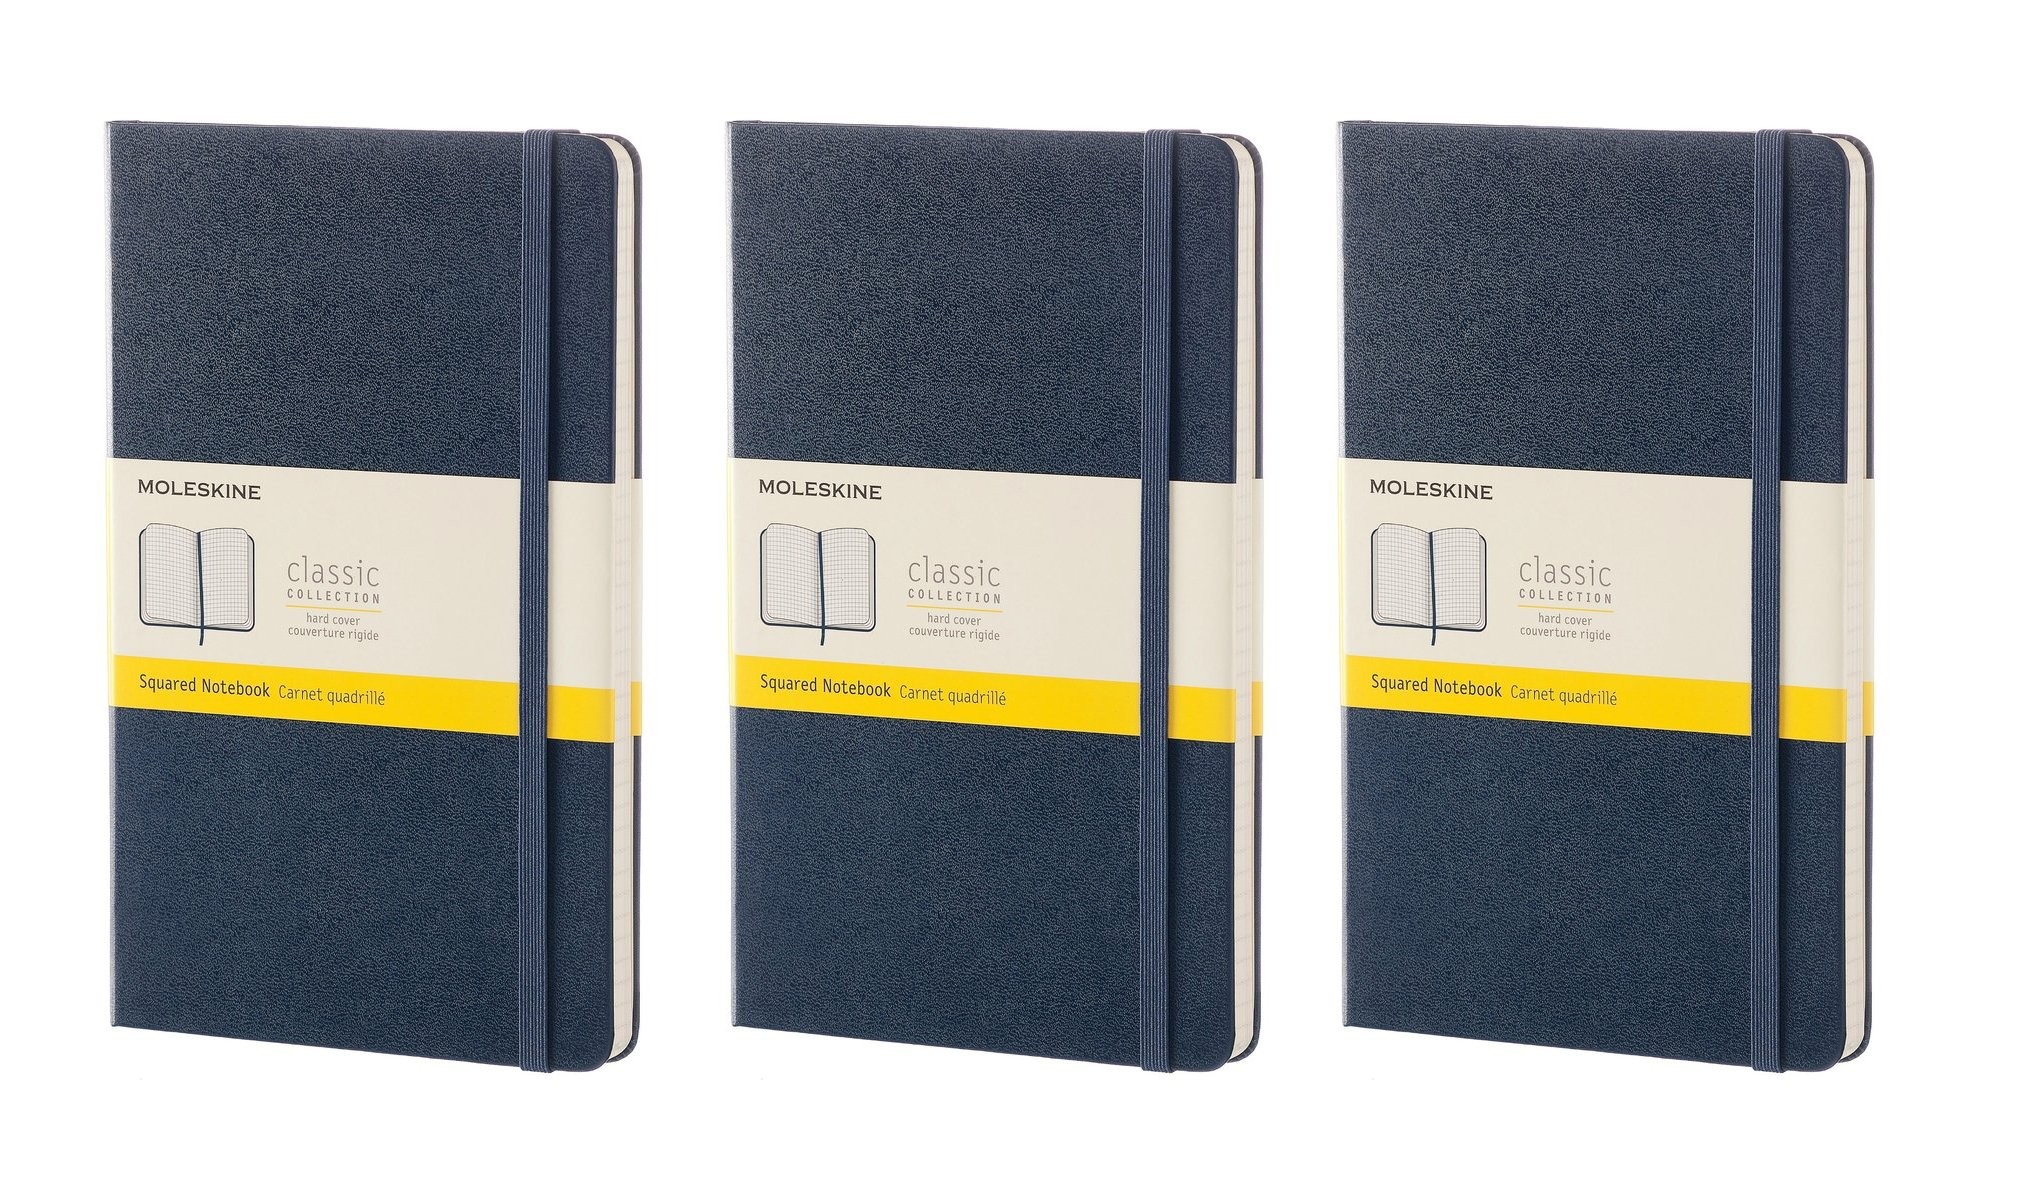 Pack of 3 Moleskine Classic Notebook, Sapphire Blue, Large, Squared, Hard Cover (5X8.25'')